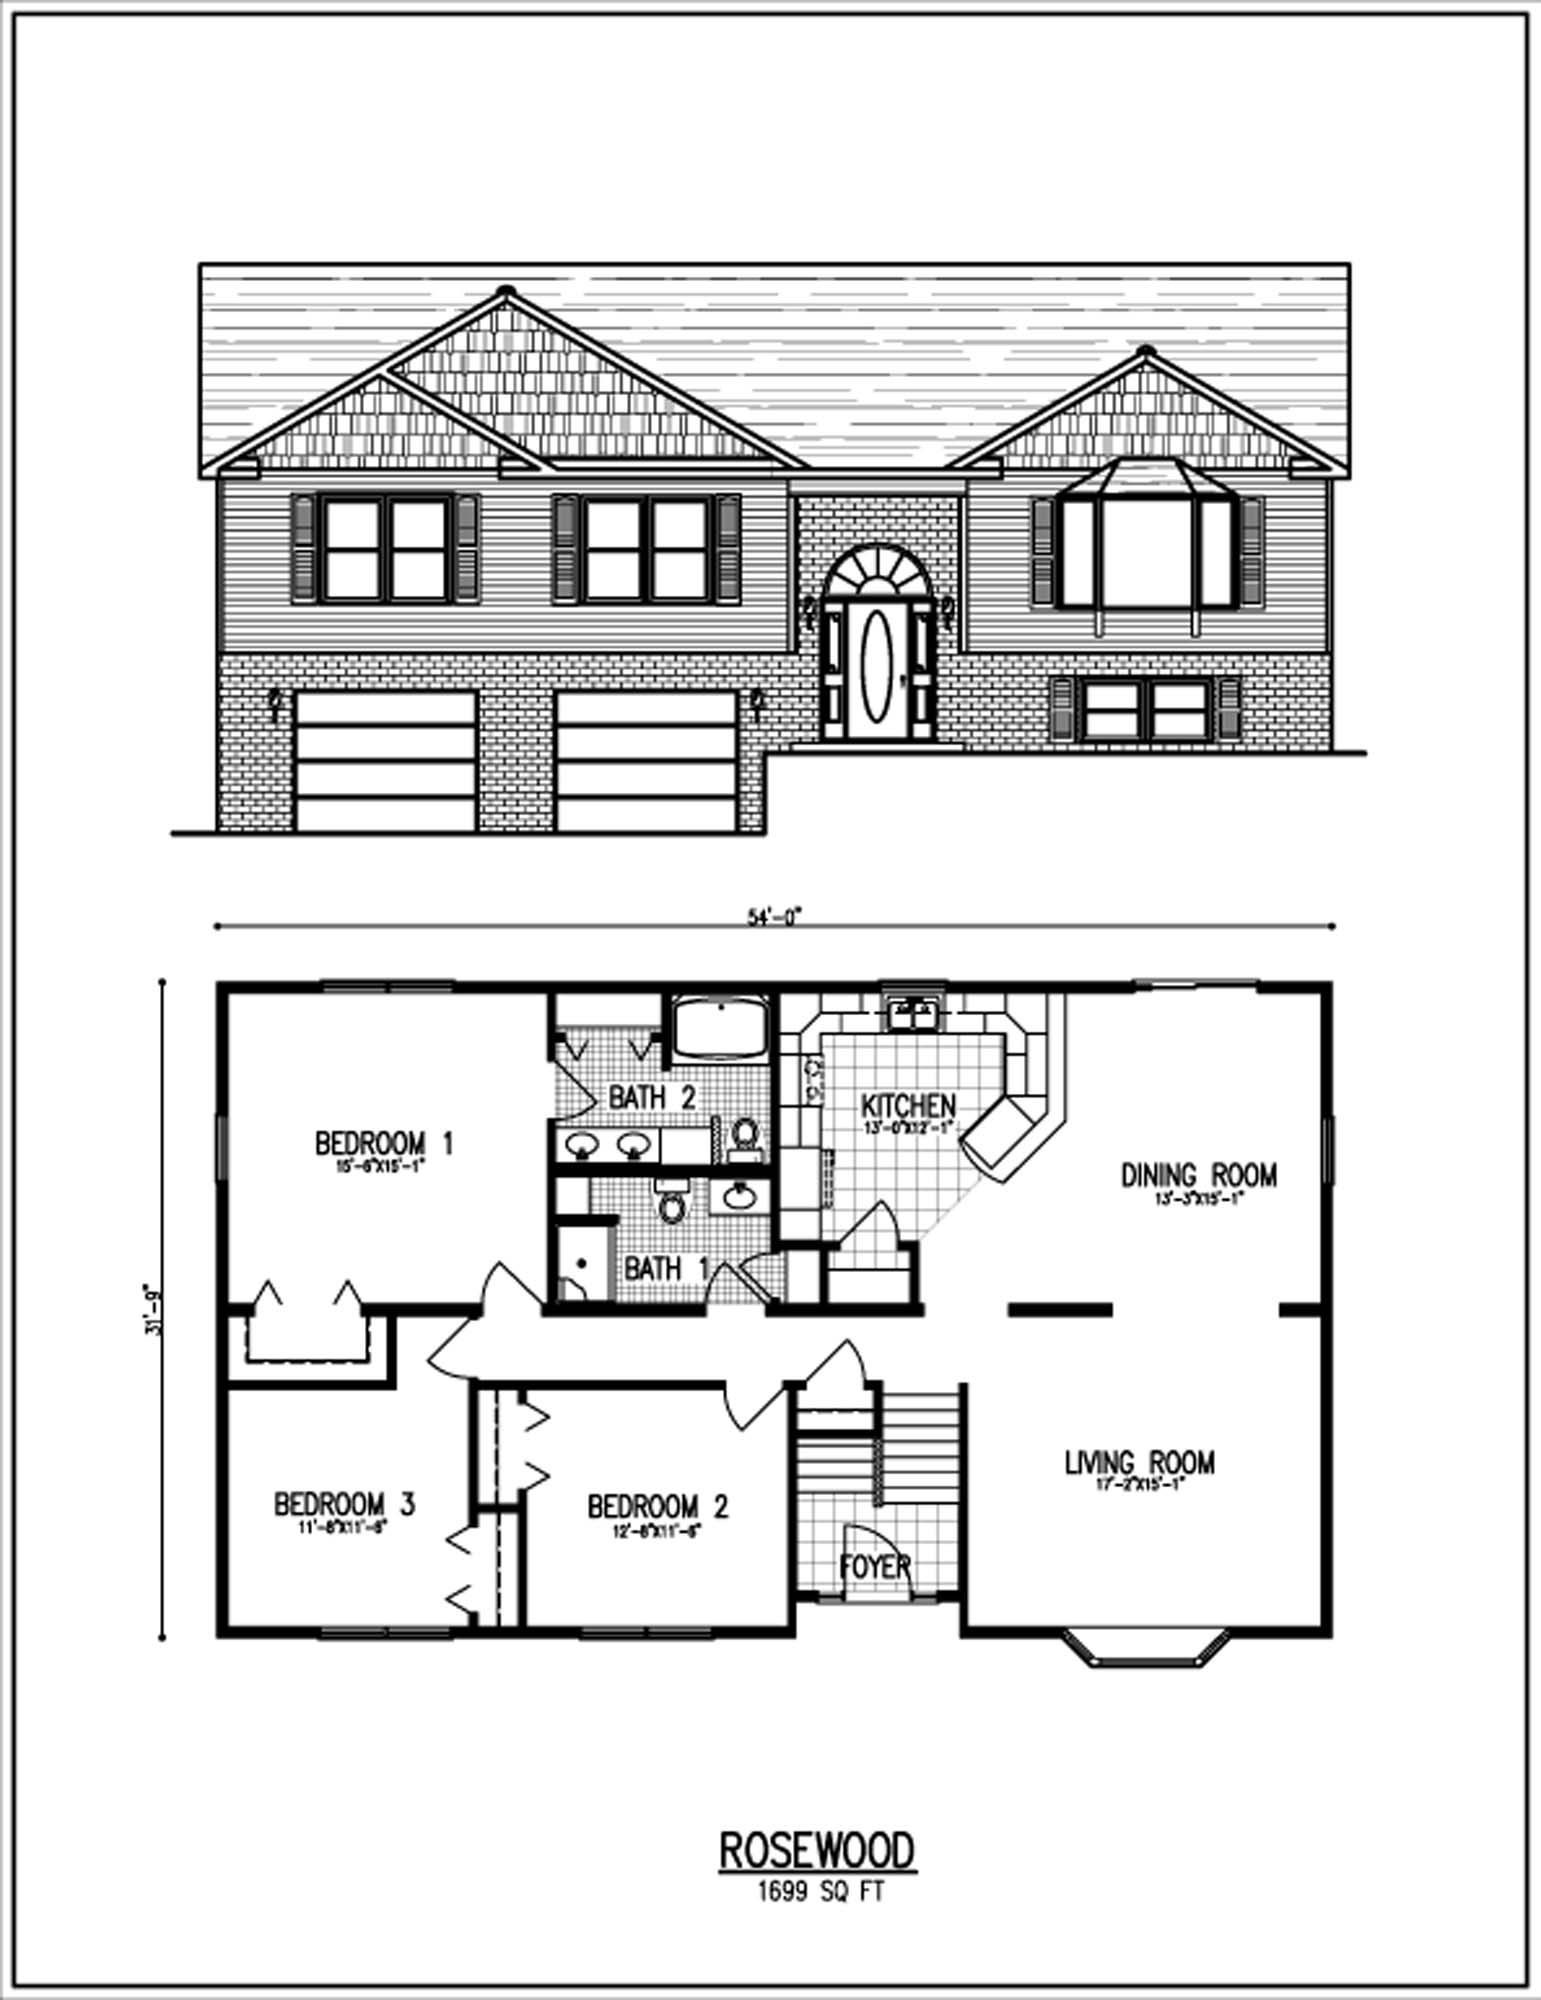 Raised ranch house plans house design plans for Raised ranch house plans designs